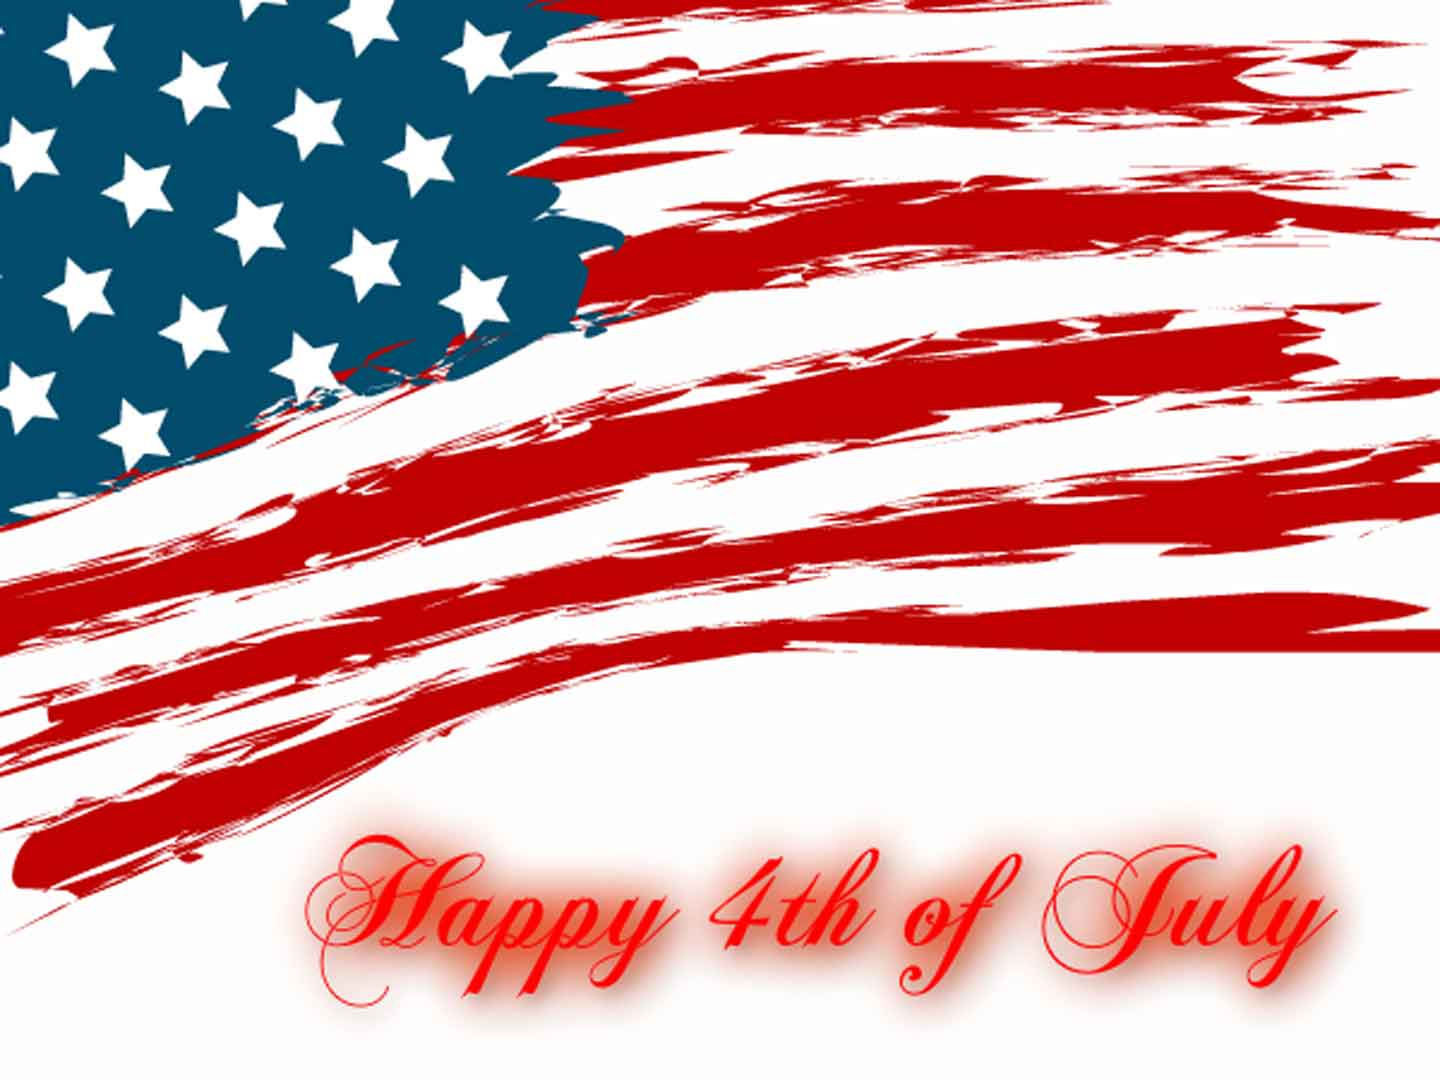 Free Wallpapers - Happy 4th of July Wallpaper wallpaper